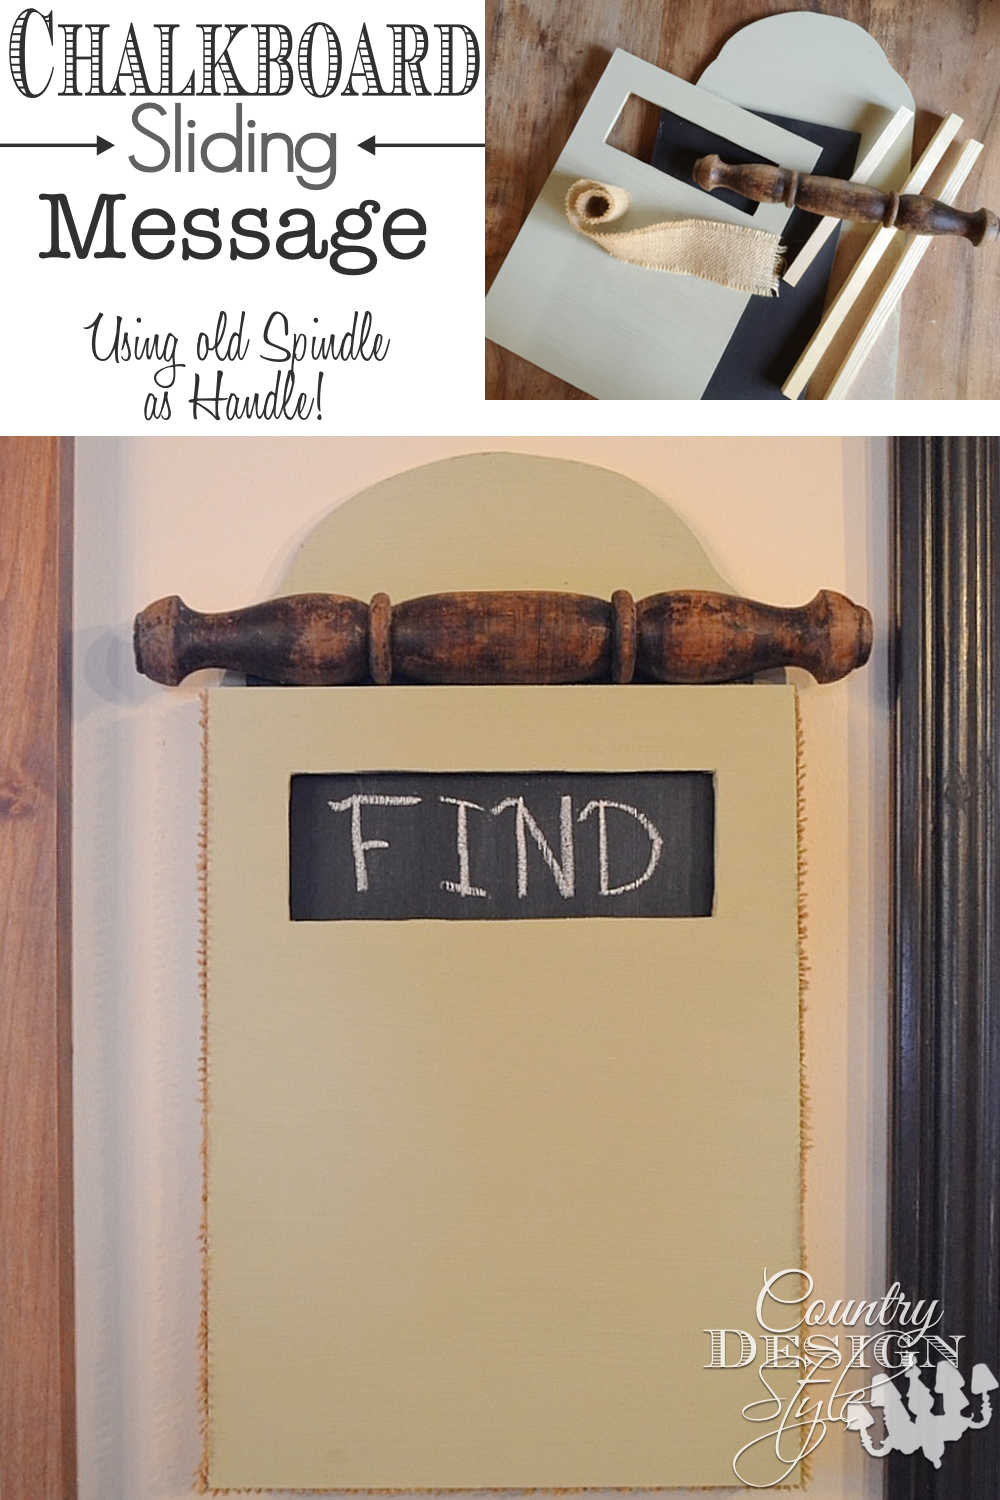 Sliding Message Chalkboard PN | Country Design Style | countrydesignstyle.com